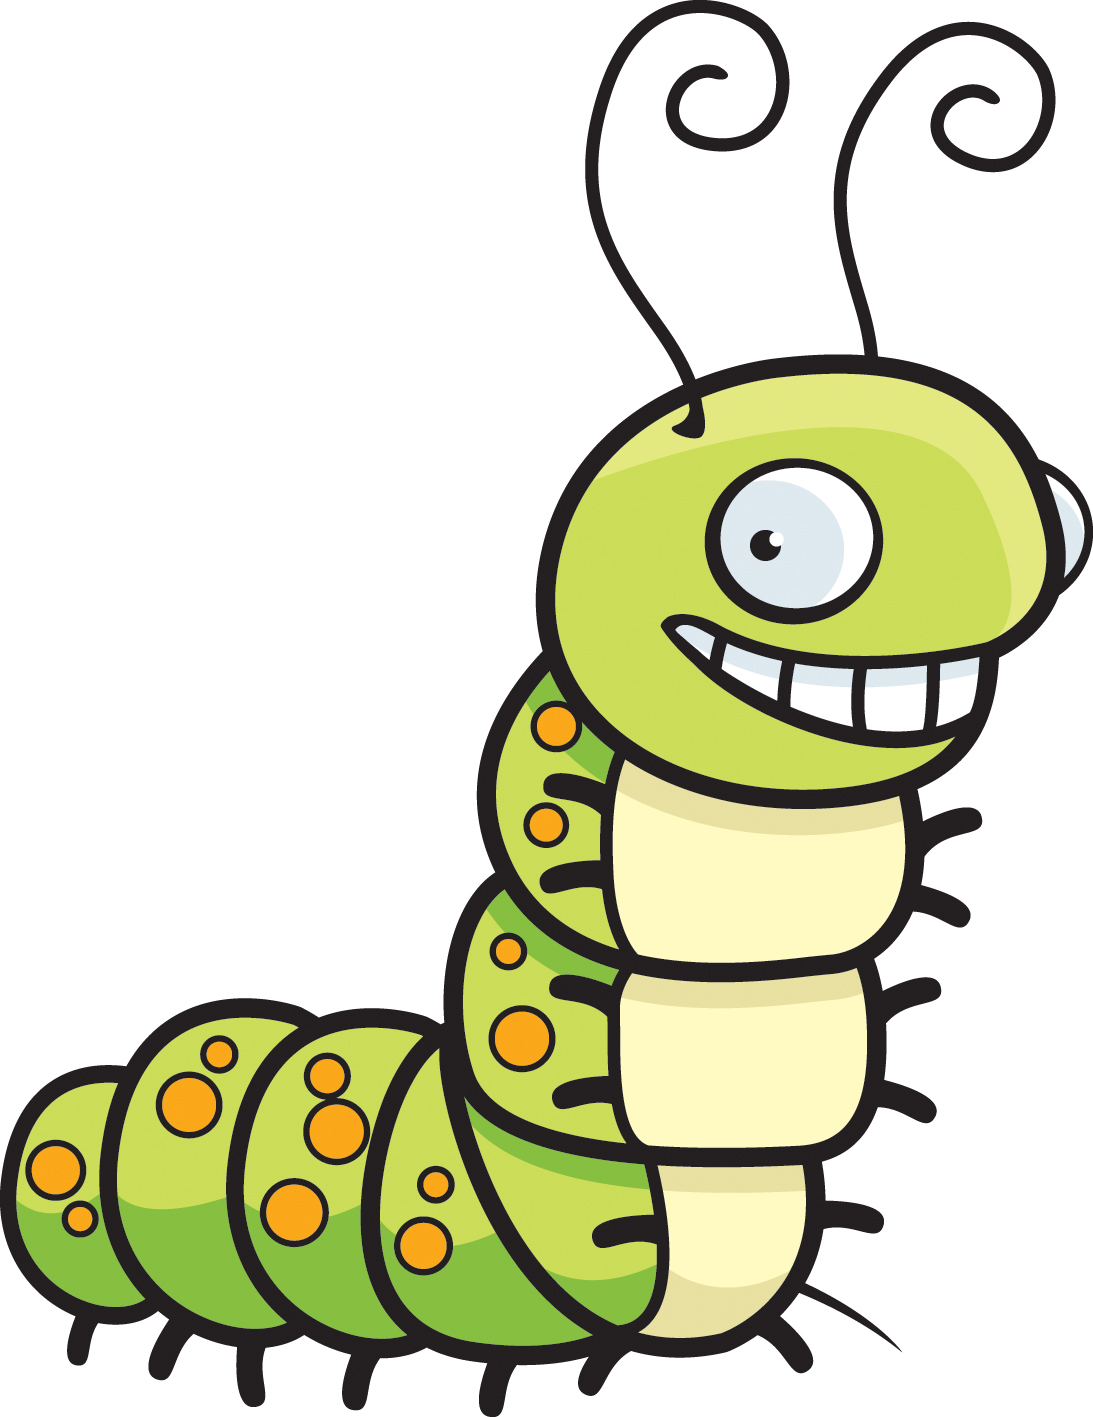 Caterfillar free clipart clip art free library Free Caterpillar Cliparts, Download Free Clip Art, Free Clip Art on ... clip art free library